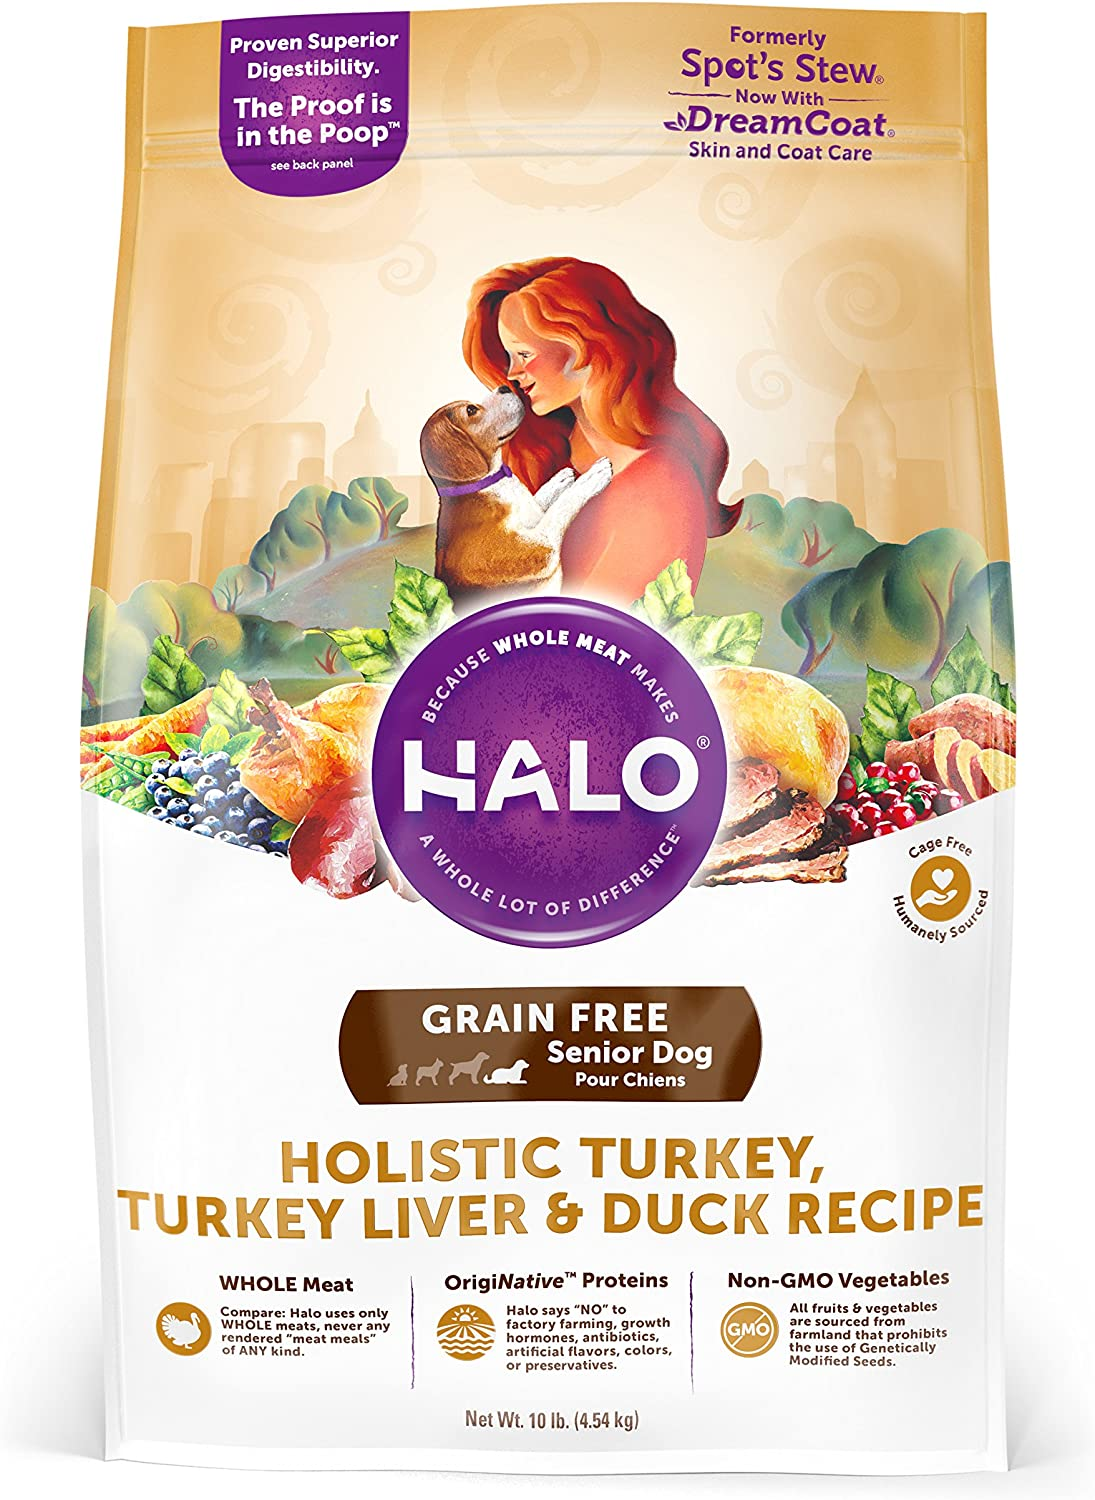 Halo Grain Free Natural Dry Dog Food, Senior Turkey, Turkey Liver Duck Recipe